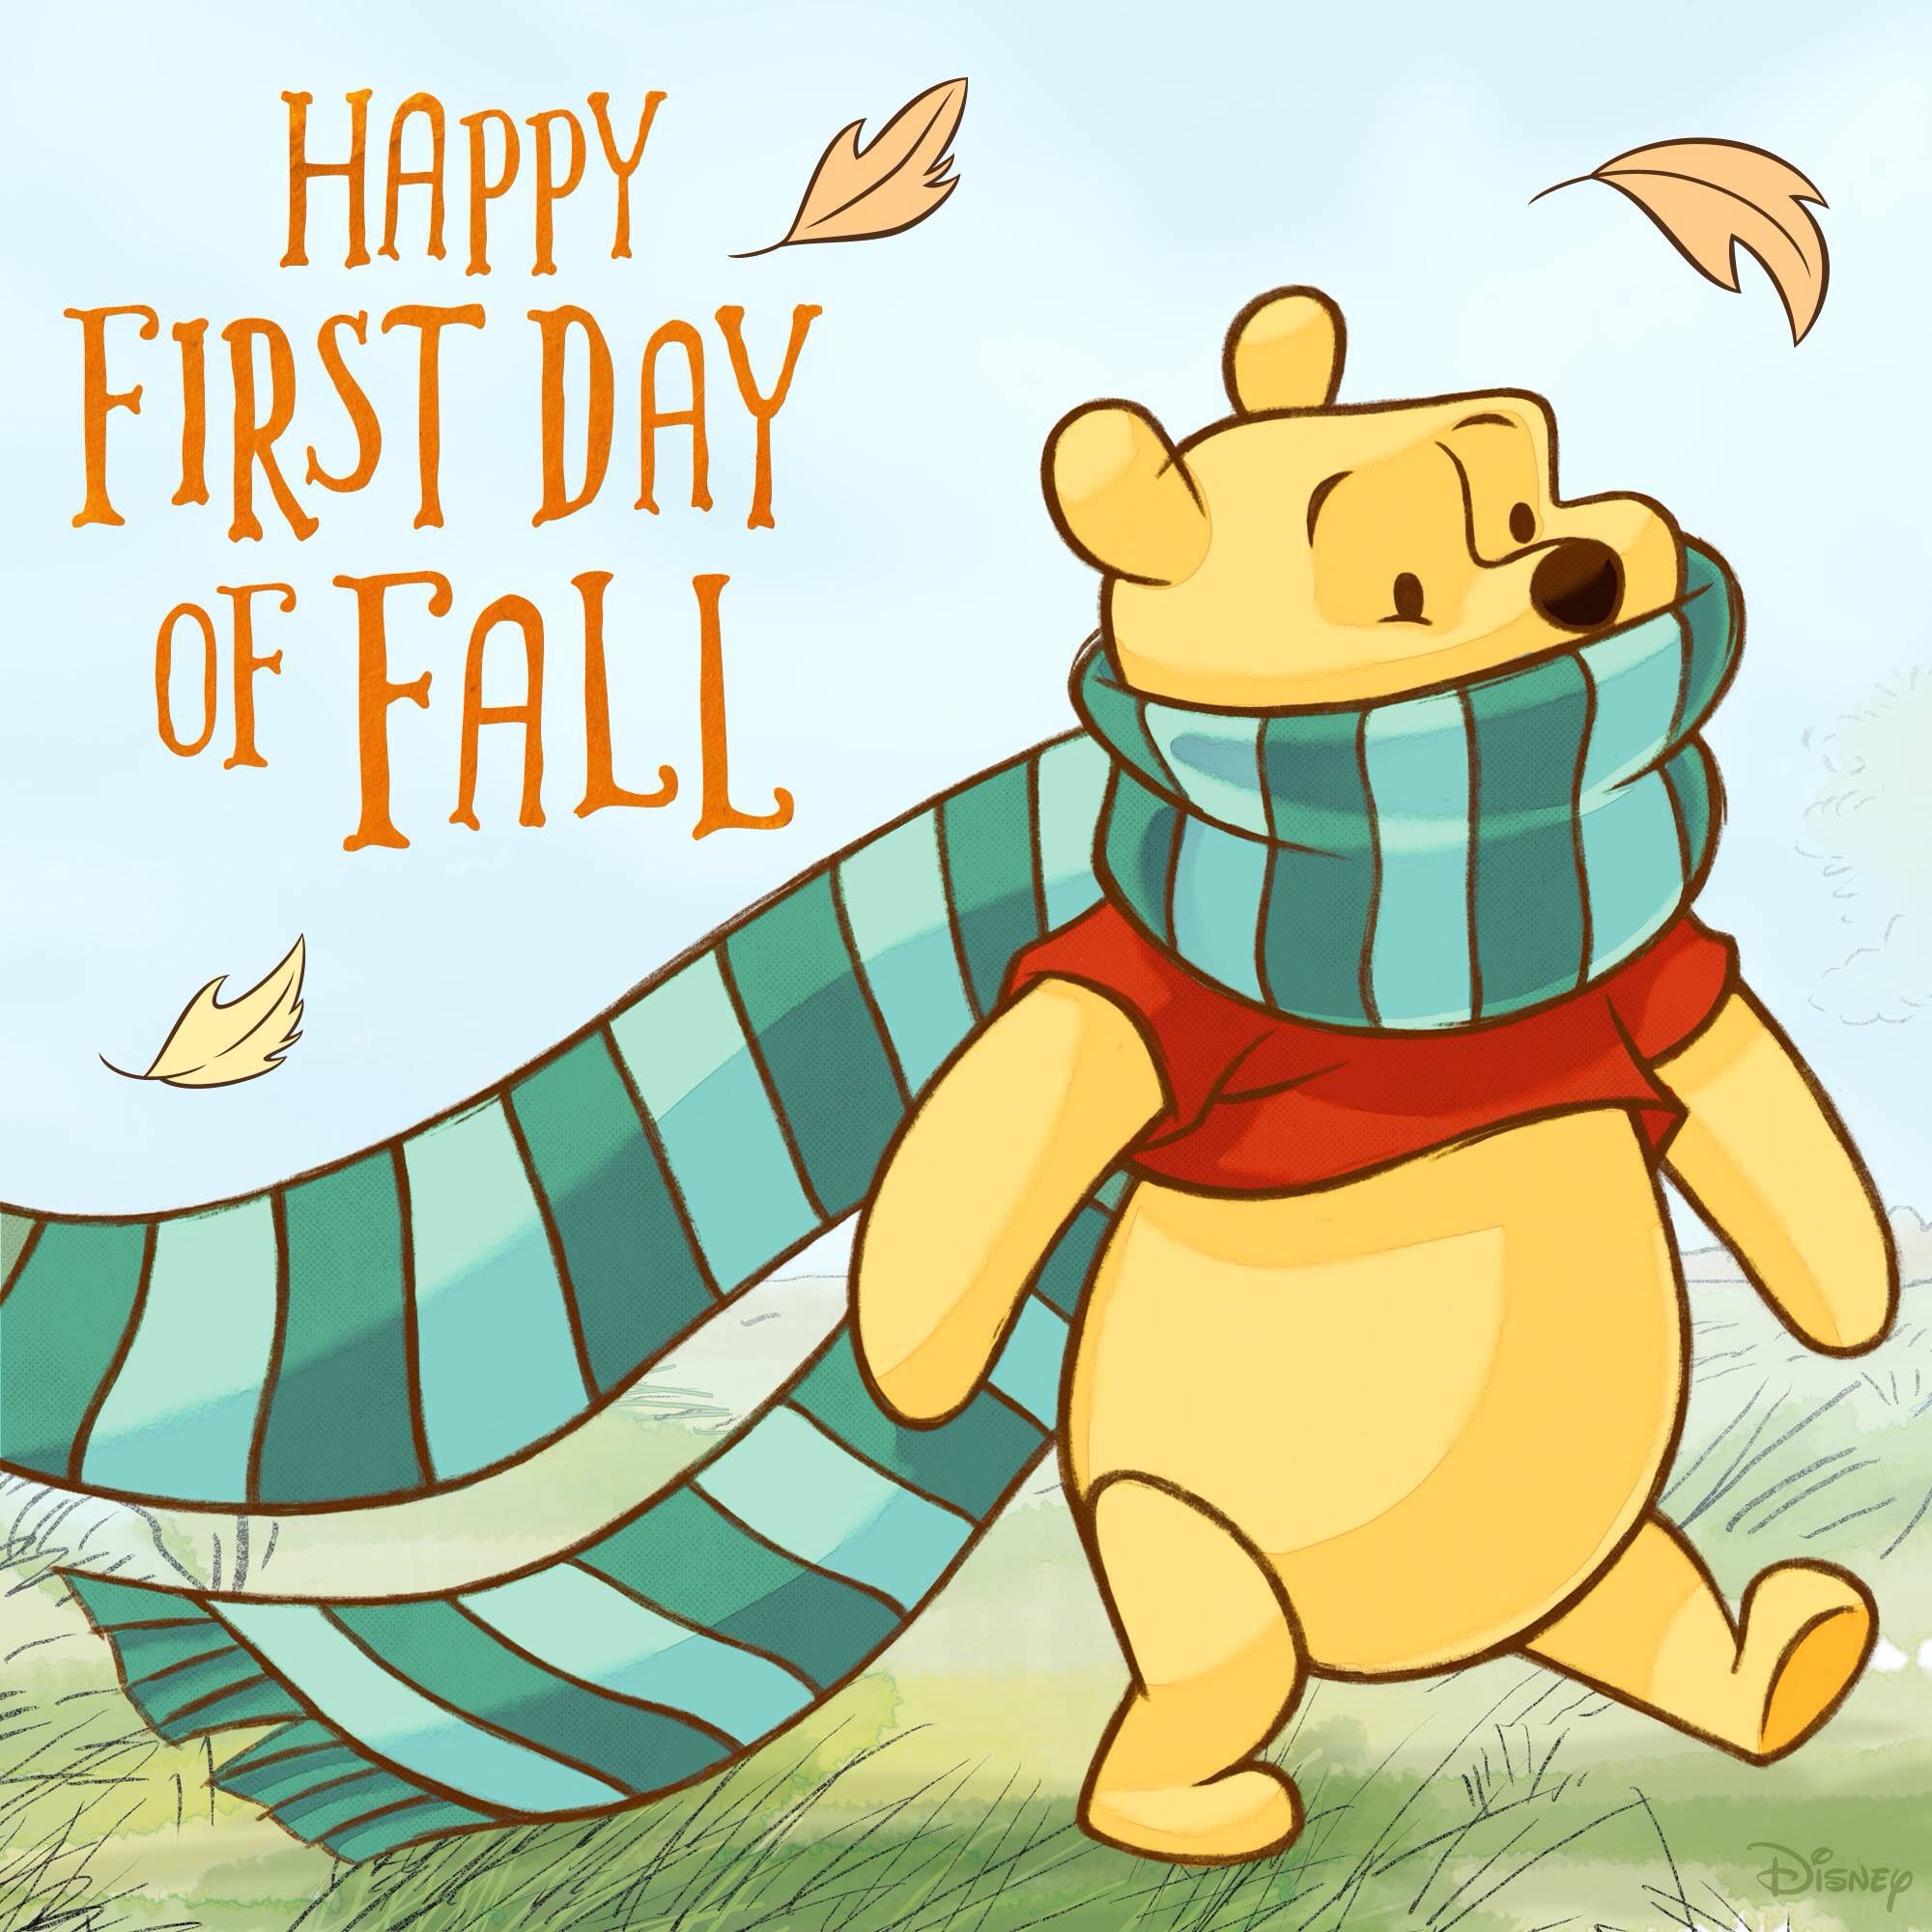 First day of Fall | Pooh quotes, Winnie the pooh